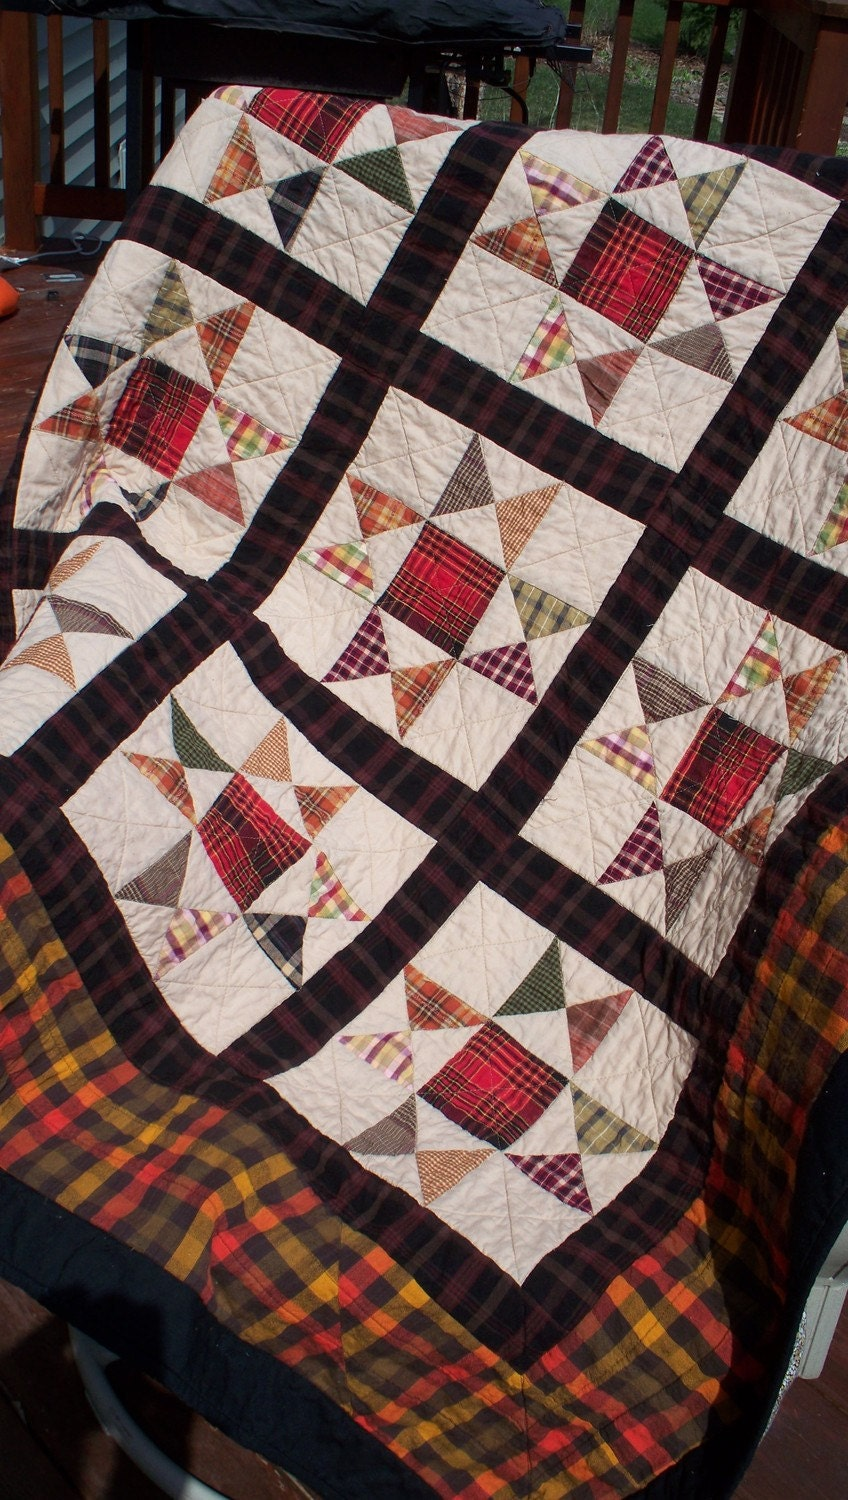 EVENING STAR 52 In Plaid Cabin Quilt